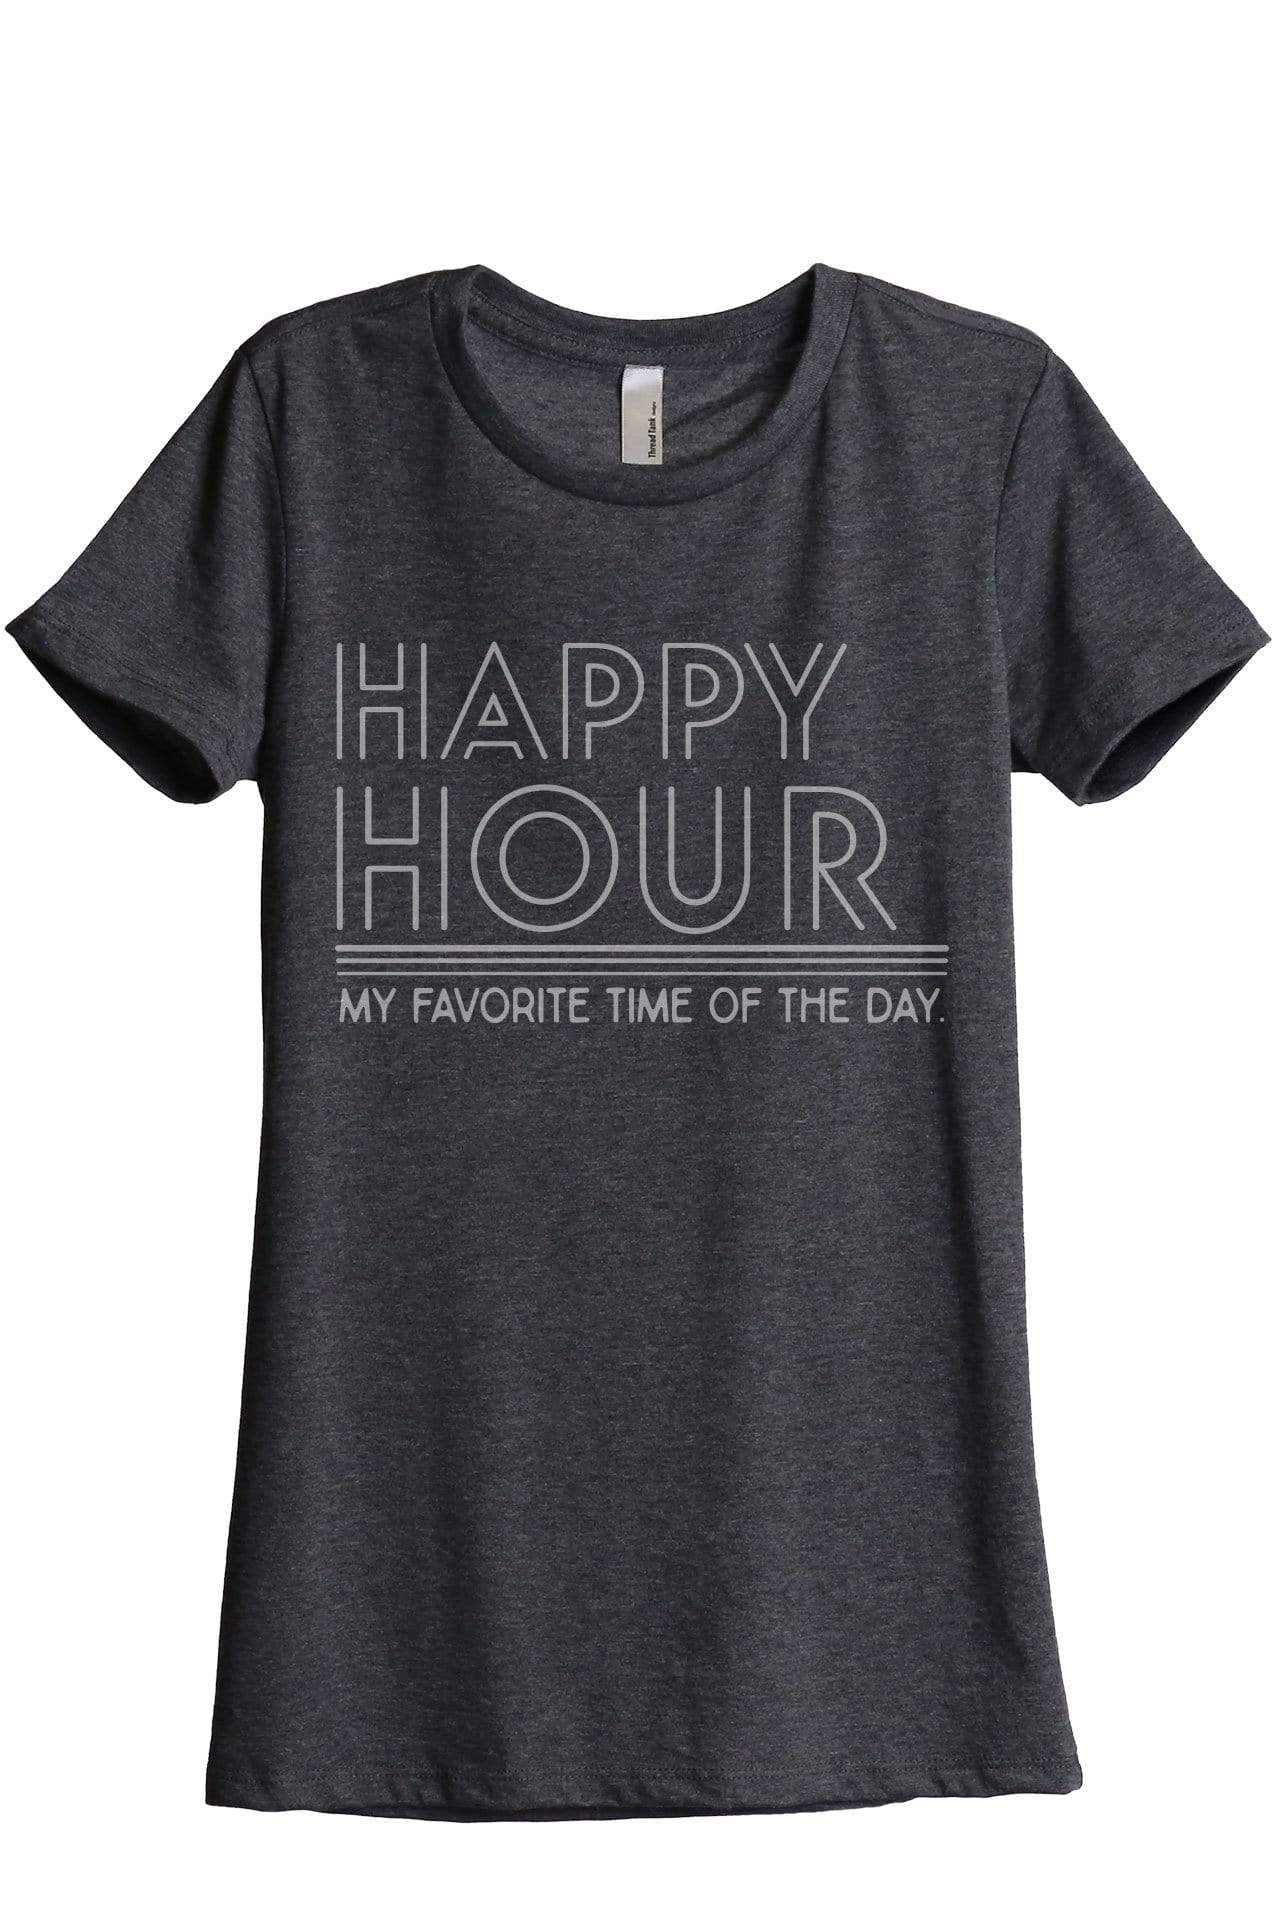 Happy Hour Women Charcoal Grey Relaxed Crew T-Shirt Tee Top